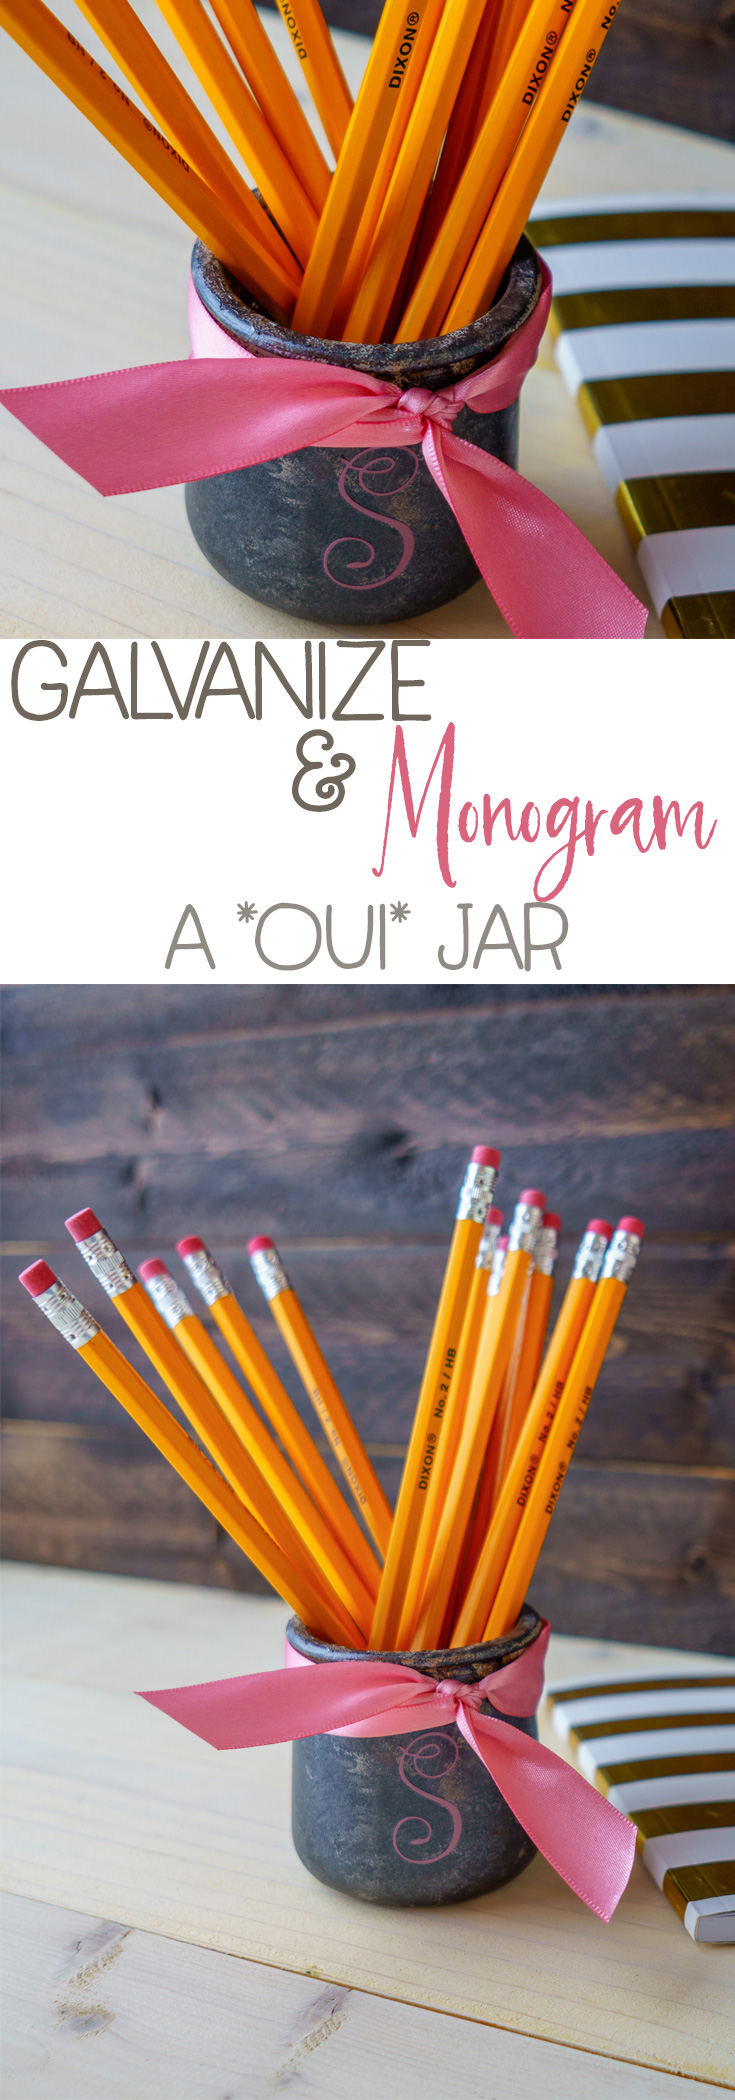 Learn how to DIY the galvanized look on a oui yogurt jar! Customize it by adding a monogram. Super fun and inexpensive craft just in time for the holidays! #ouijars #galvanized #farmhouse #recycle #upcycle #crafts